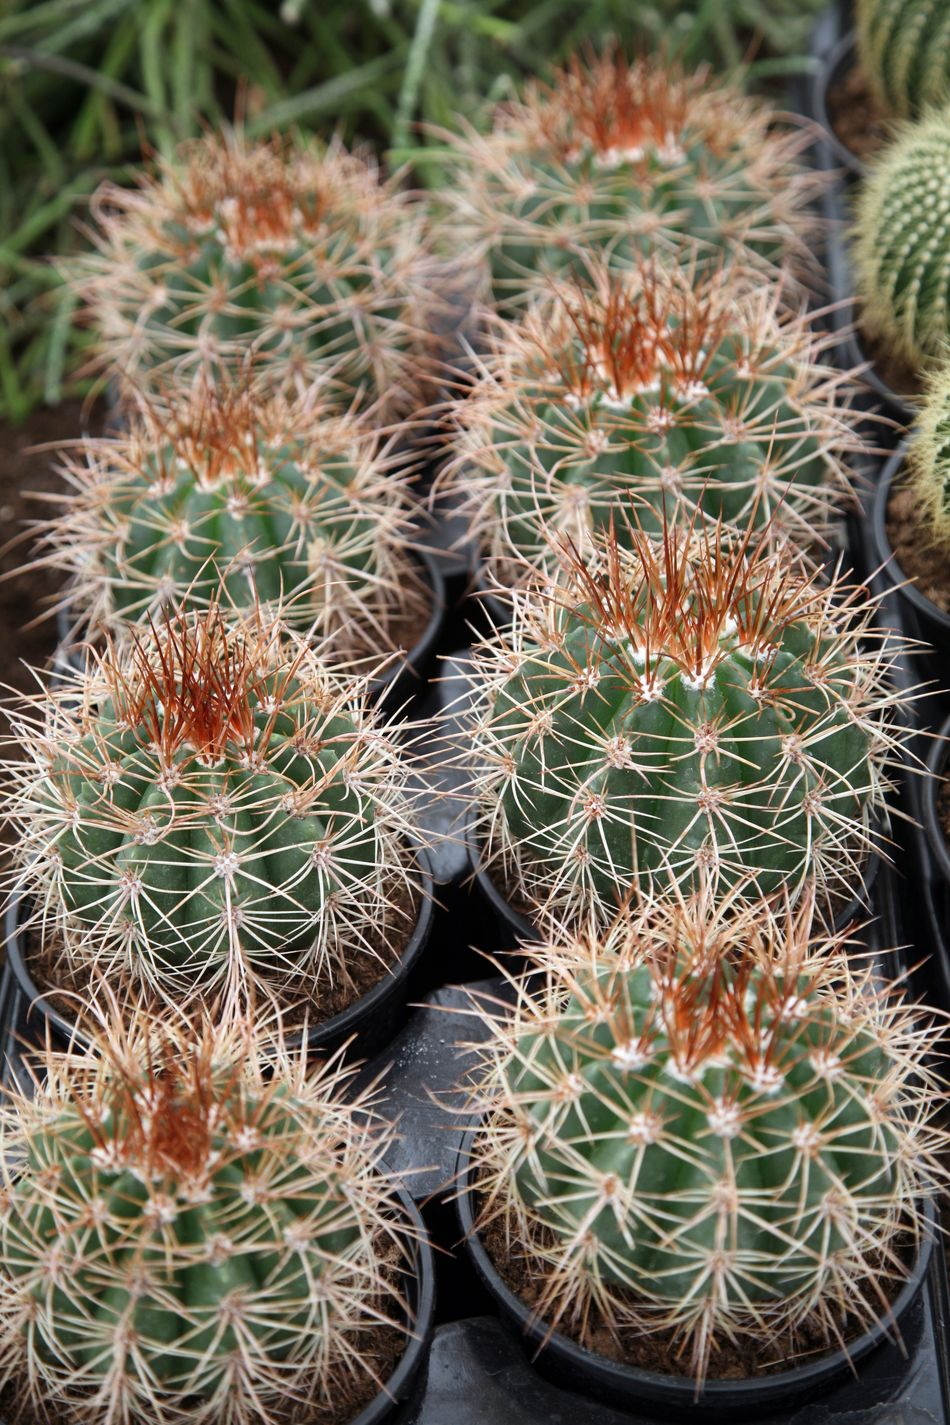 Cactus Beauty In Nature Botanic Botanical Botany Cacti Desert Exotic Flora Floral Freshness Garden Green Growth Nature Needle Plant Prickly Spike Spine Succulent Thorn Tropical Wild